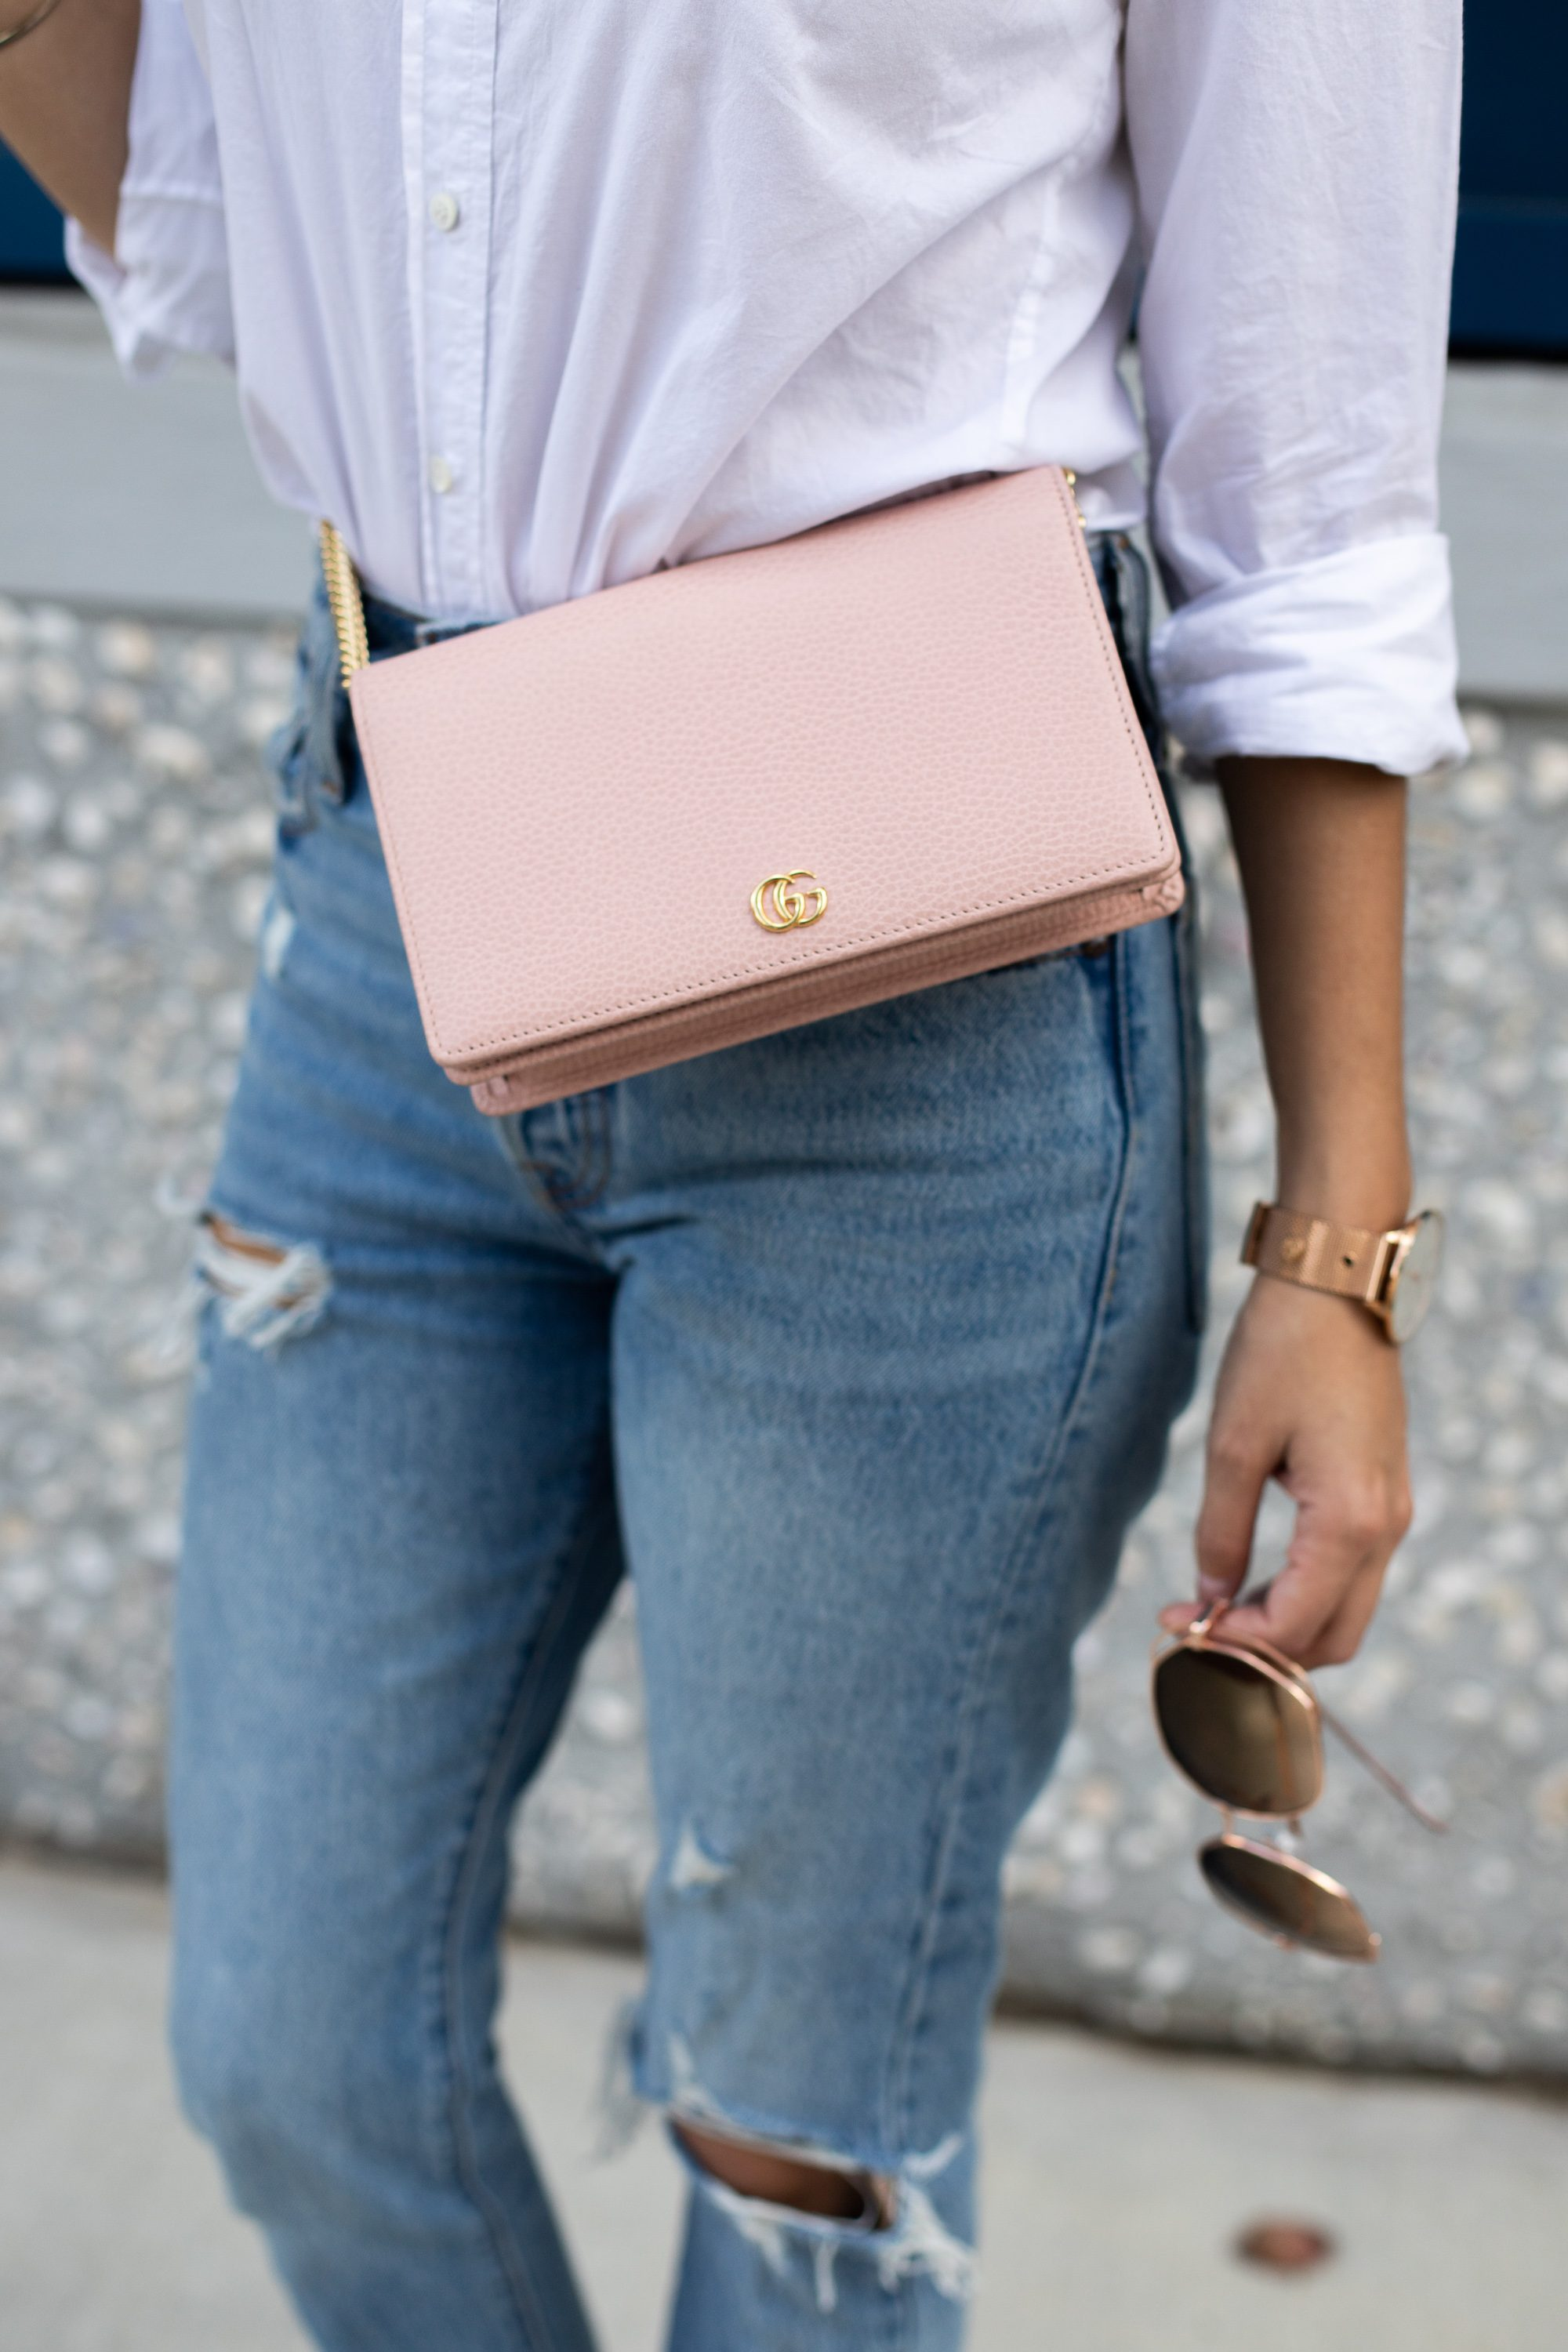 business casual, weekend style, how to style mom jeans, waist bags, belt bag, how to wear ripped jeans to work, casual style, wearing jeans to a business meeting, blogger style, pink gucci crossbody, Levi's Women's 501 Skinny Jeans Can't Touch This Blue, best jeans on amazon